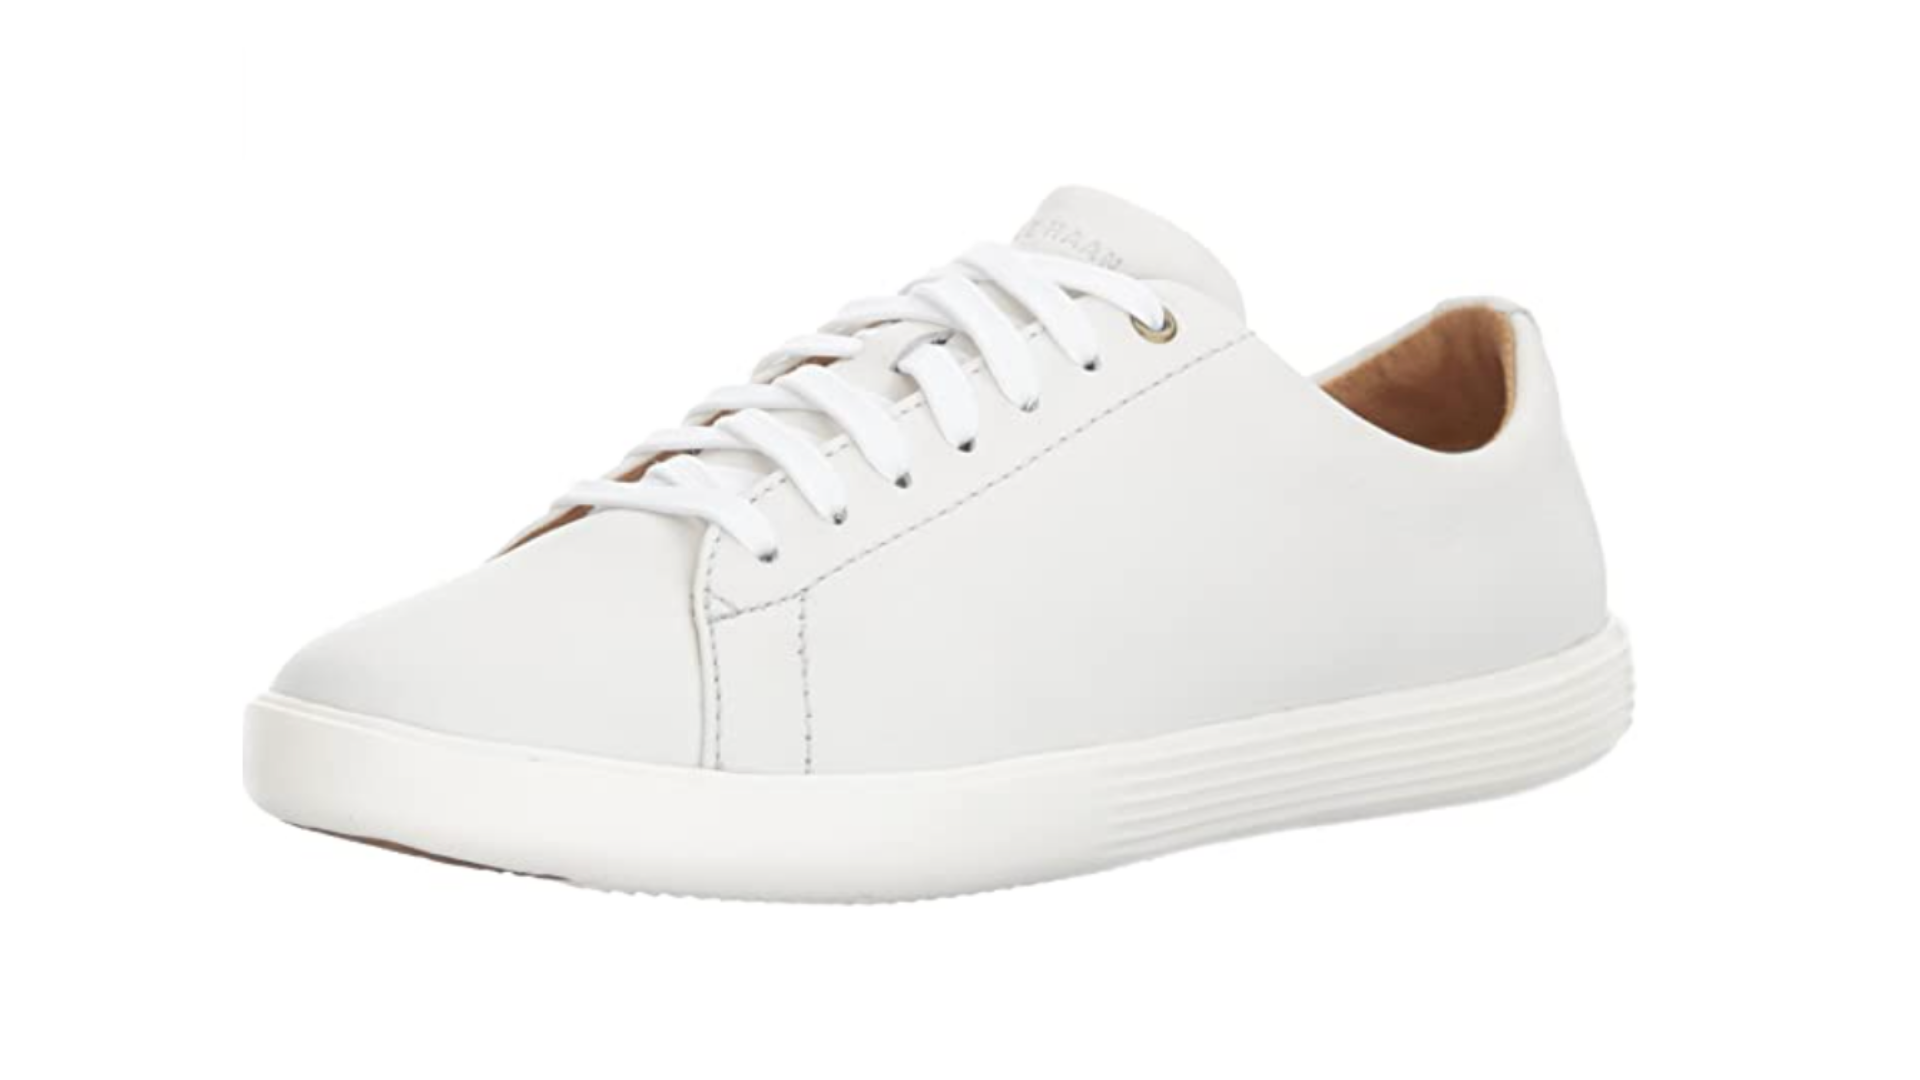 Cole Haan best clothing stores for women over 50